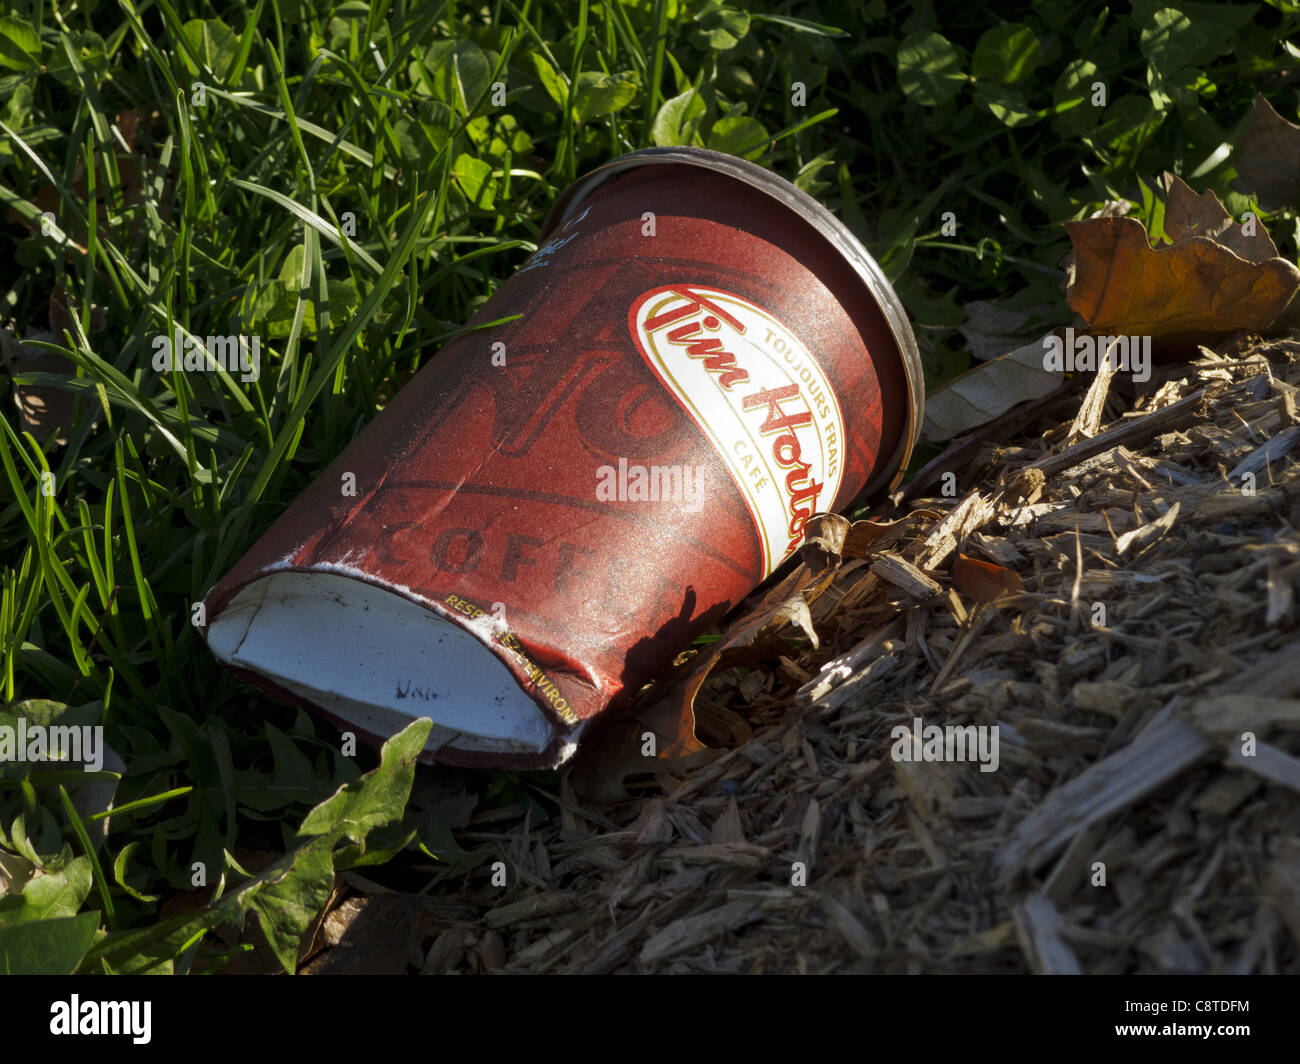 Abandoned Tim Hortons recyclable coffee cup - Stock Image